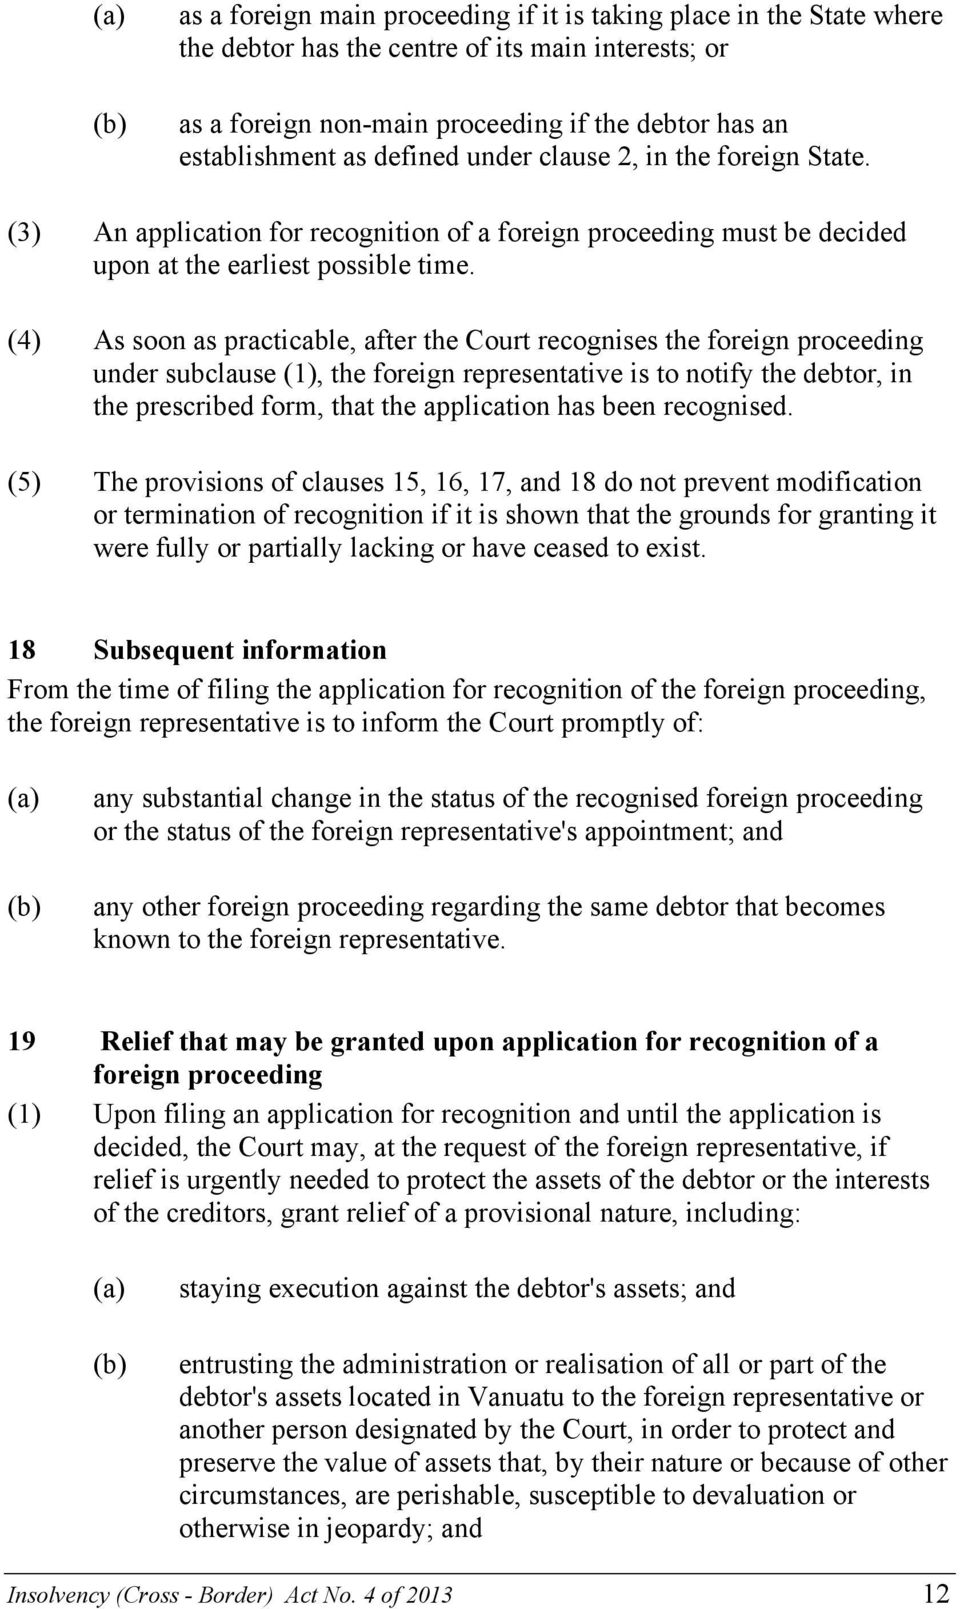 (4) As soon as practicable, after the Court recognises the foreign proceeding under subclause (1), the foreign representative is to notify the debtor, in the prescribed form, that the application has